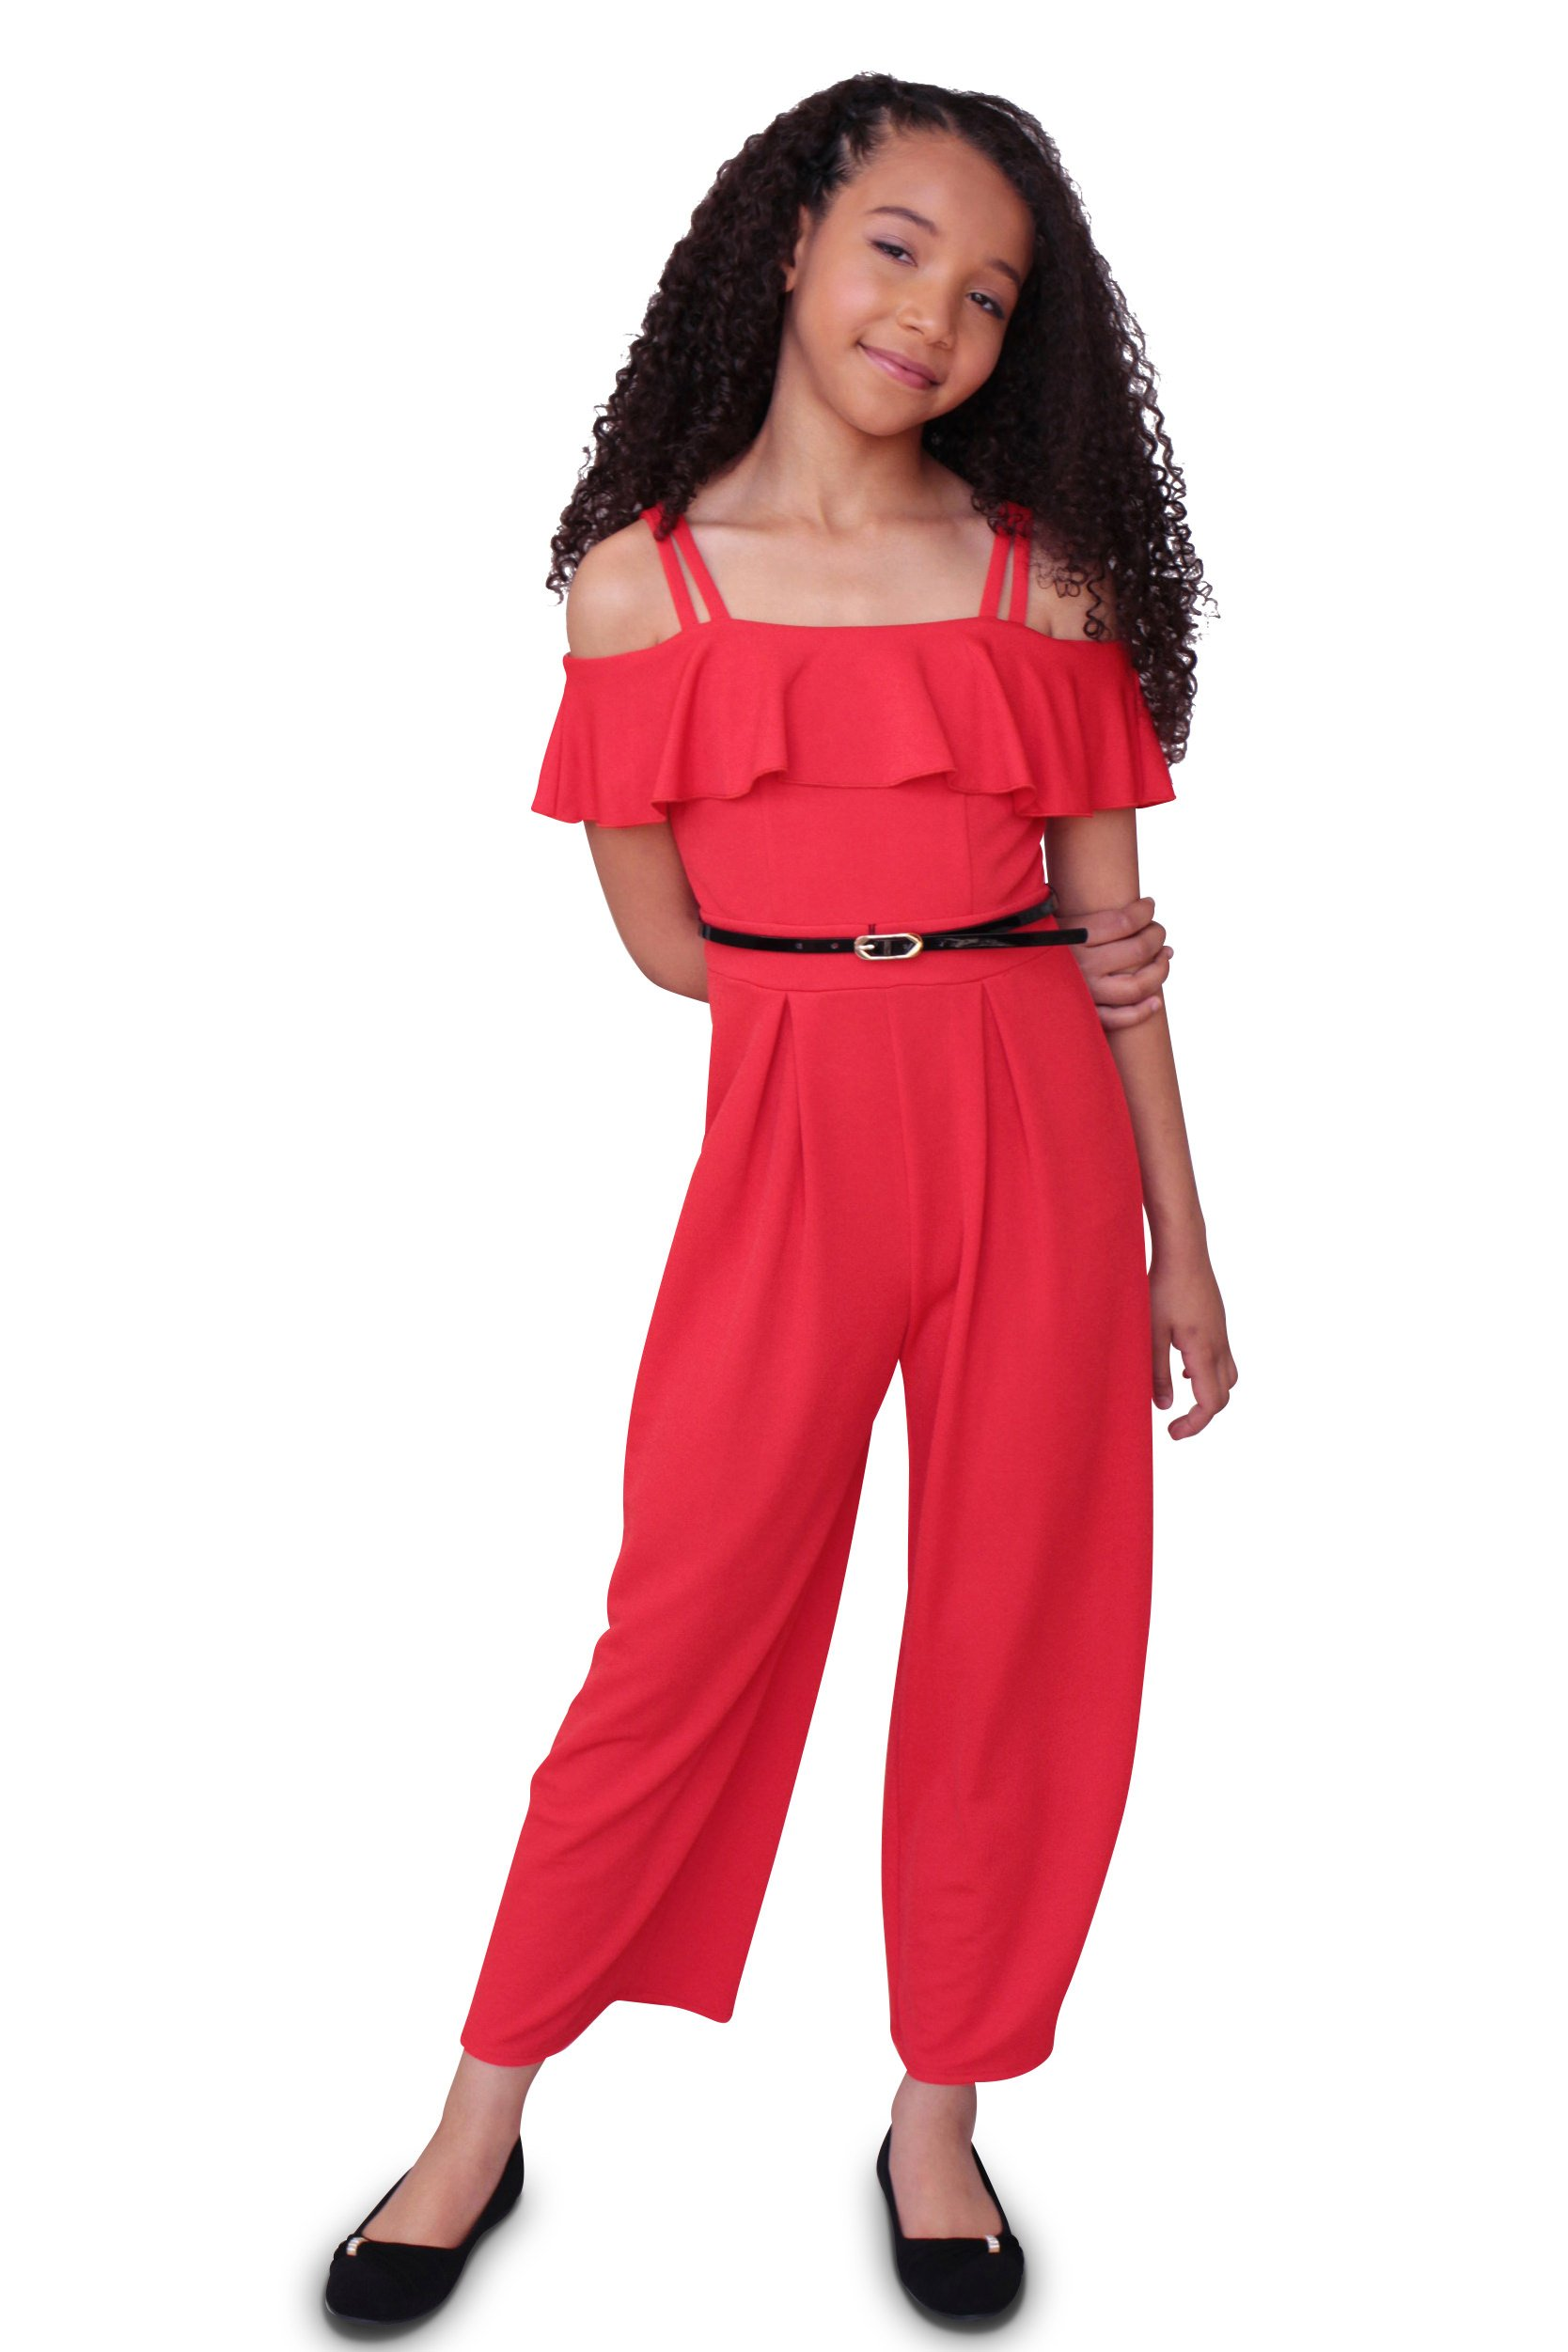 Emerald Sundae Girls Off Shoulder Ruffle Top Jumpsuit with Removable Belt, Red, Size 16